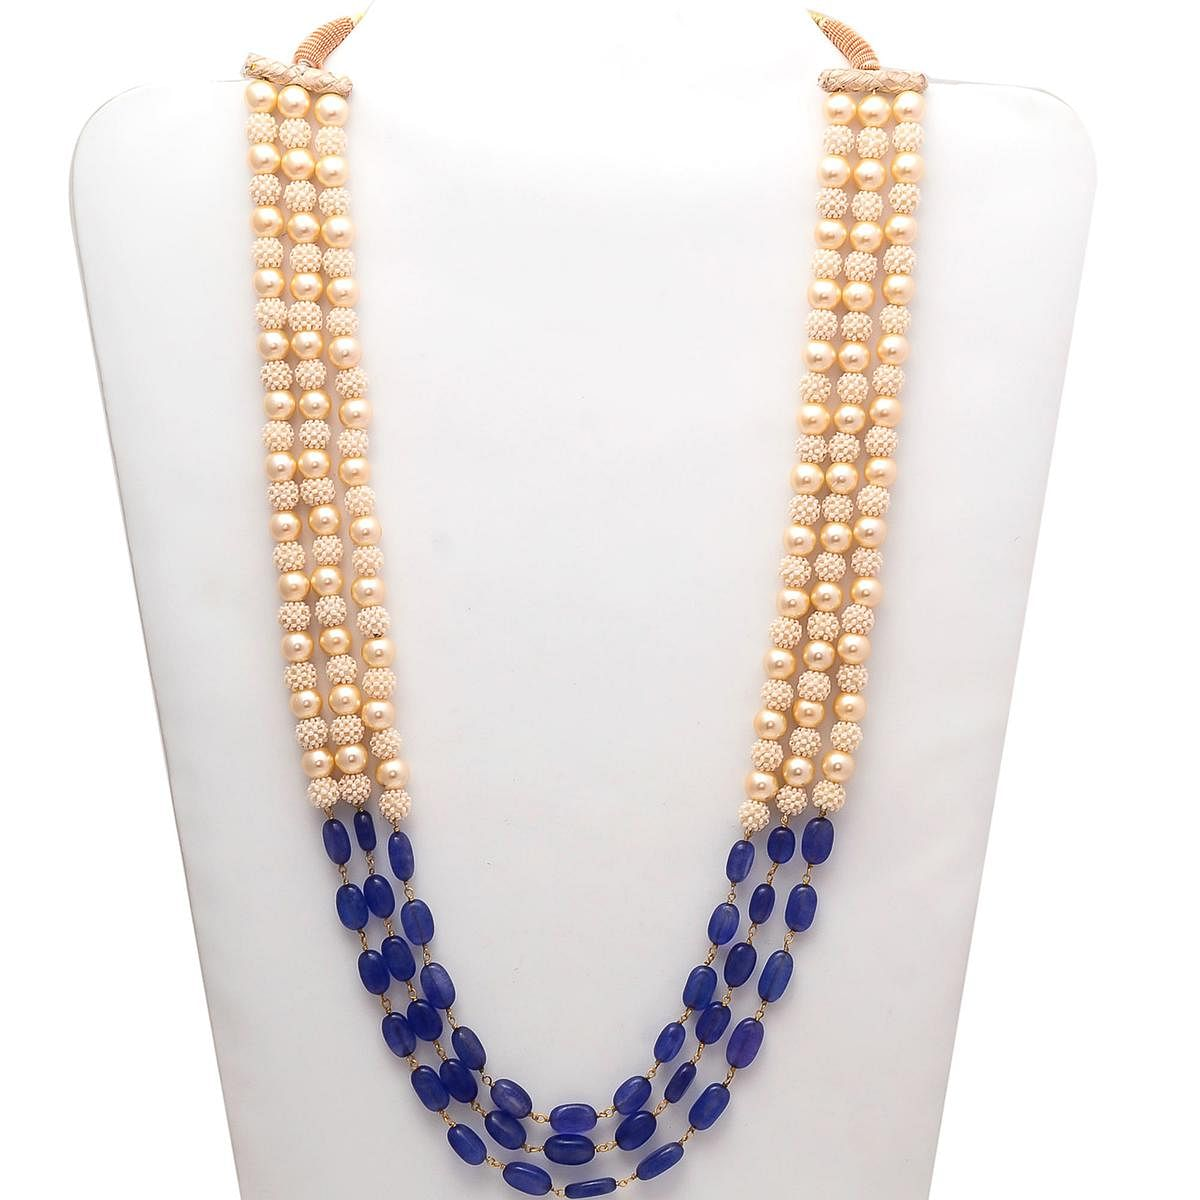 Glorious Mala Necklace With Pearl & Blue Colored Stones